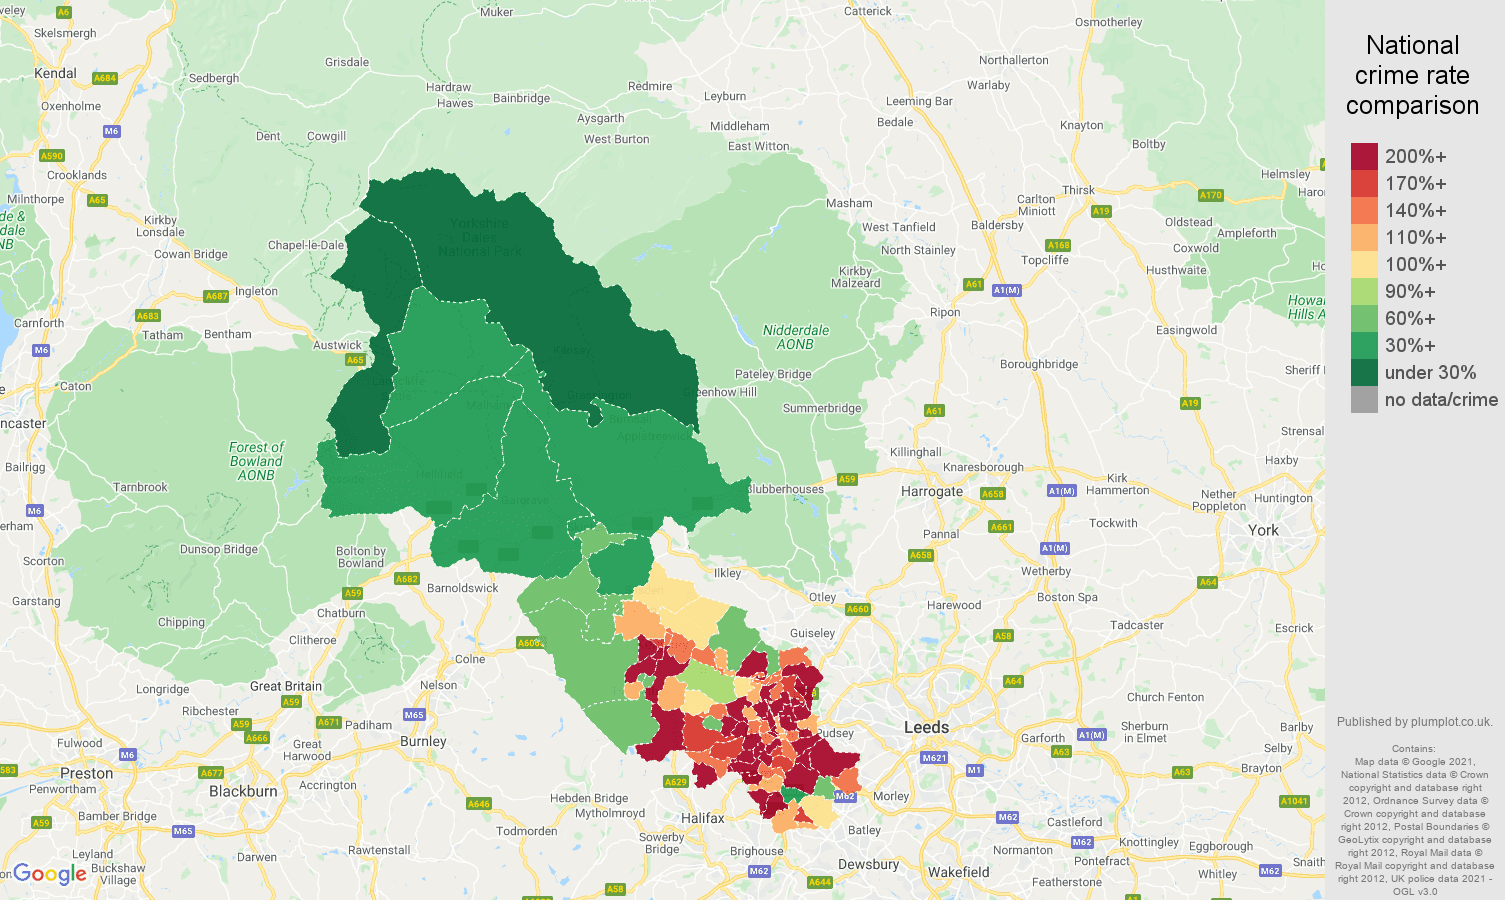 Bradford violent crime rate comparison map